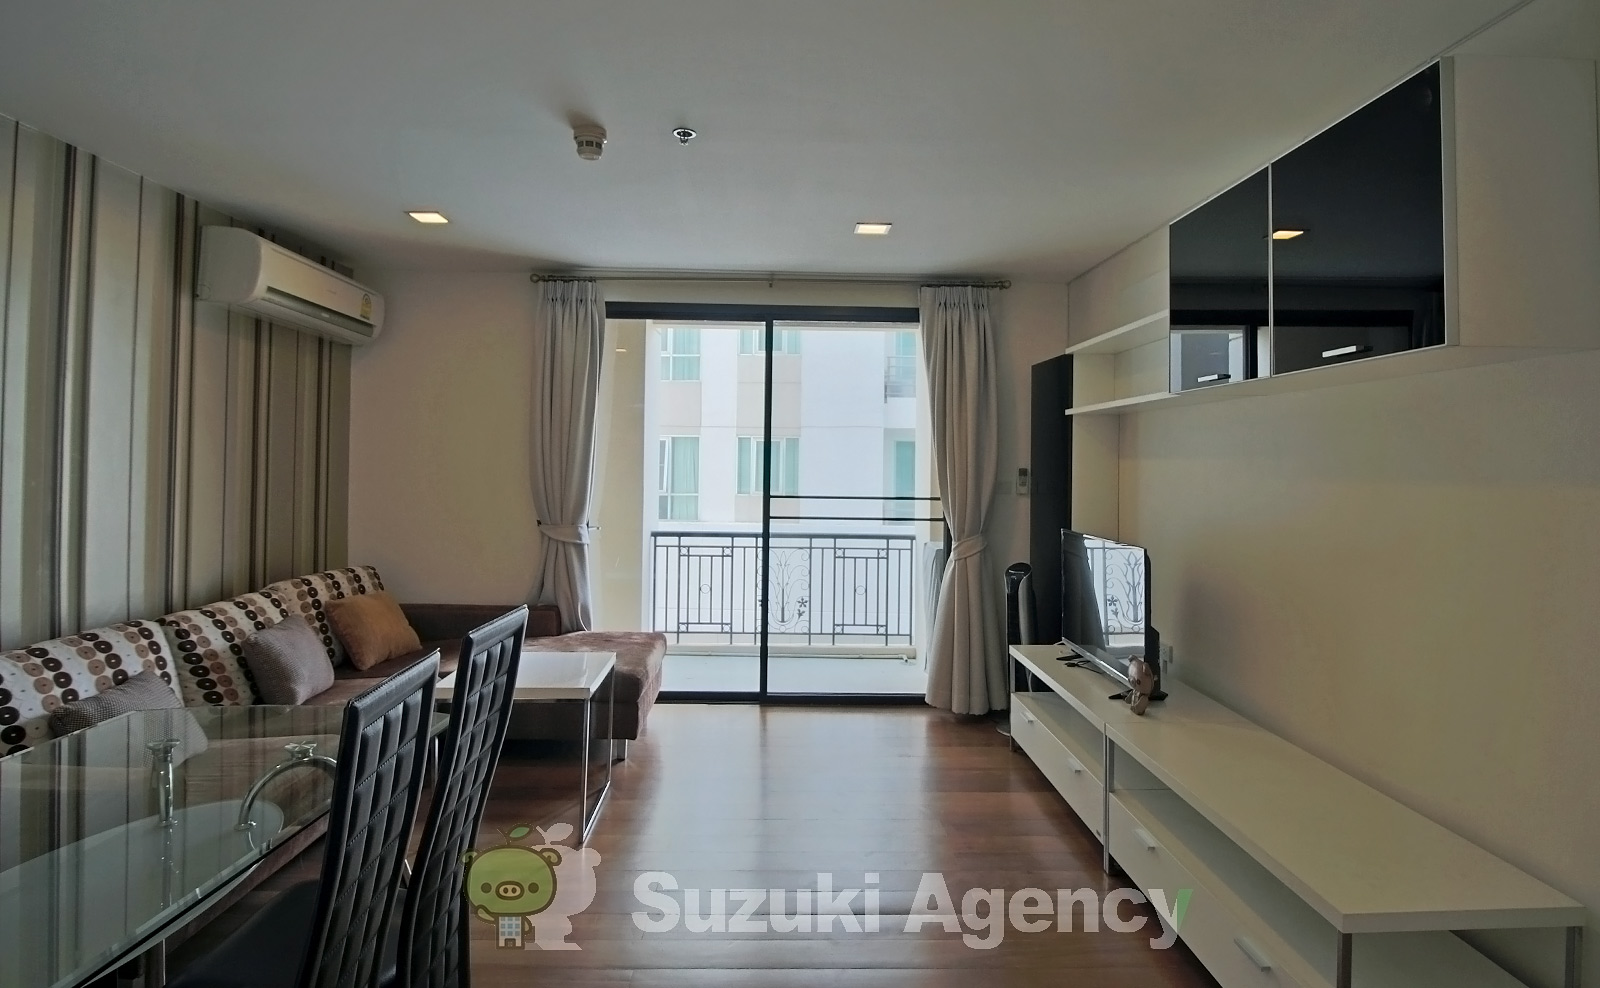 Prime Mansion Sukhumvit 31:2Bed Room Photos No.2